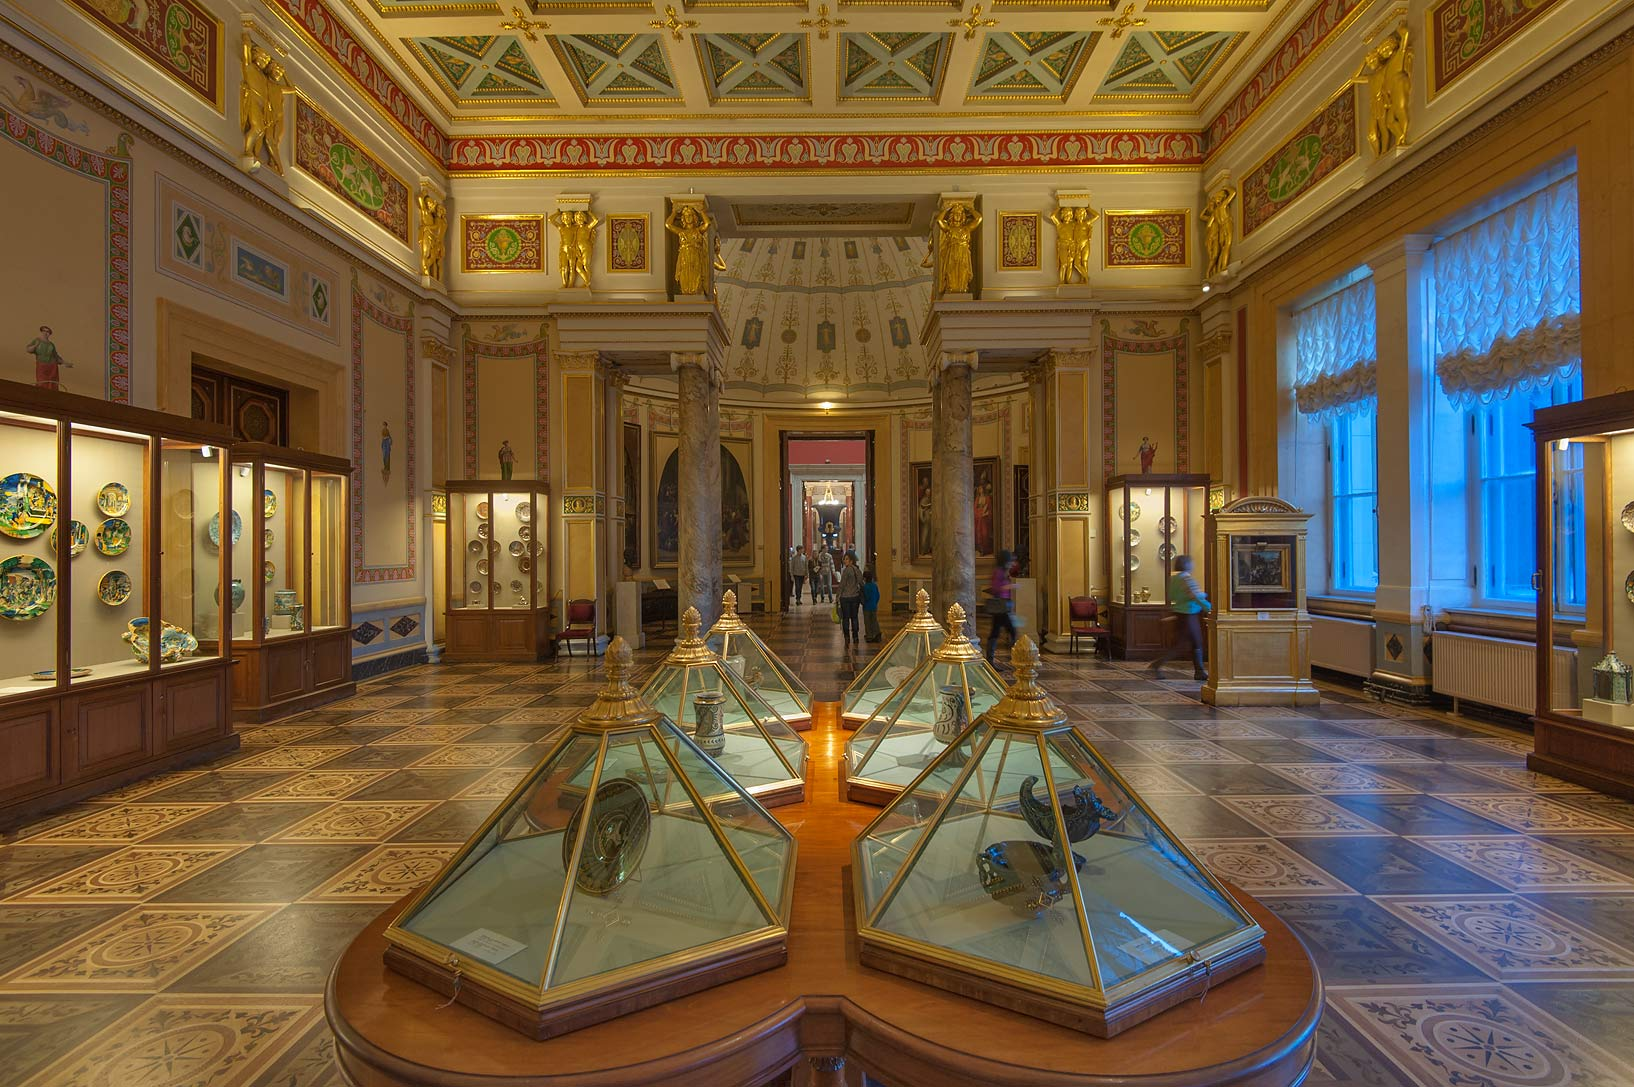 Exhibitions of Majolica Room in Hermitage Museum. St.Petersburg, Russia